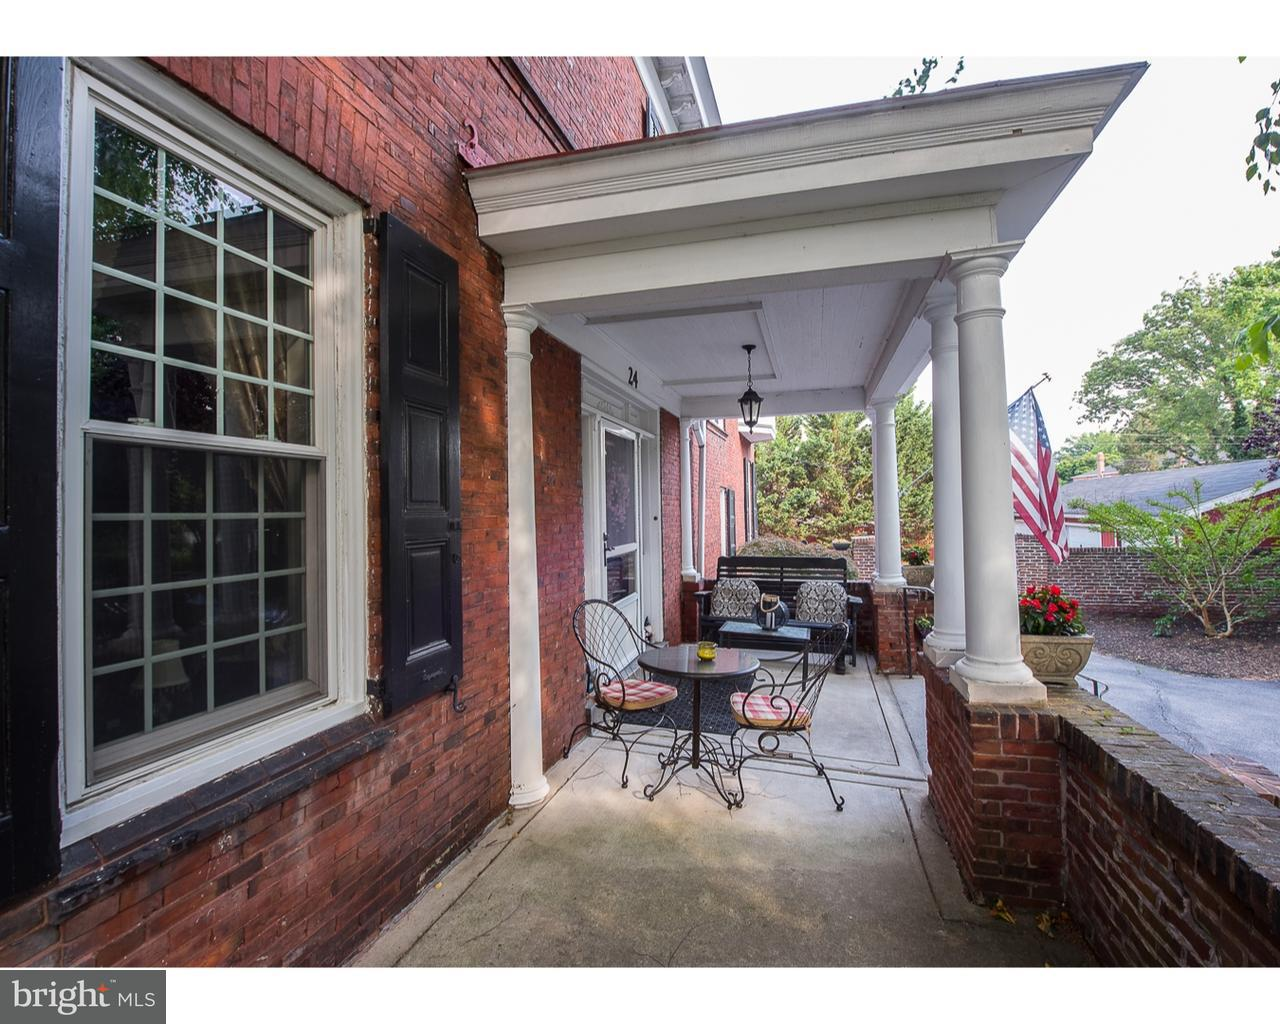 24 W SELLERS AVE, RIDLEY PARK - Listed at $449,900, RIDLEY PARK